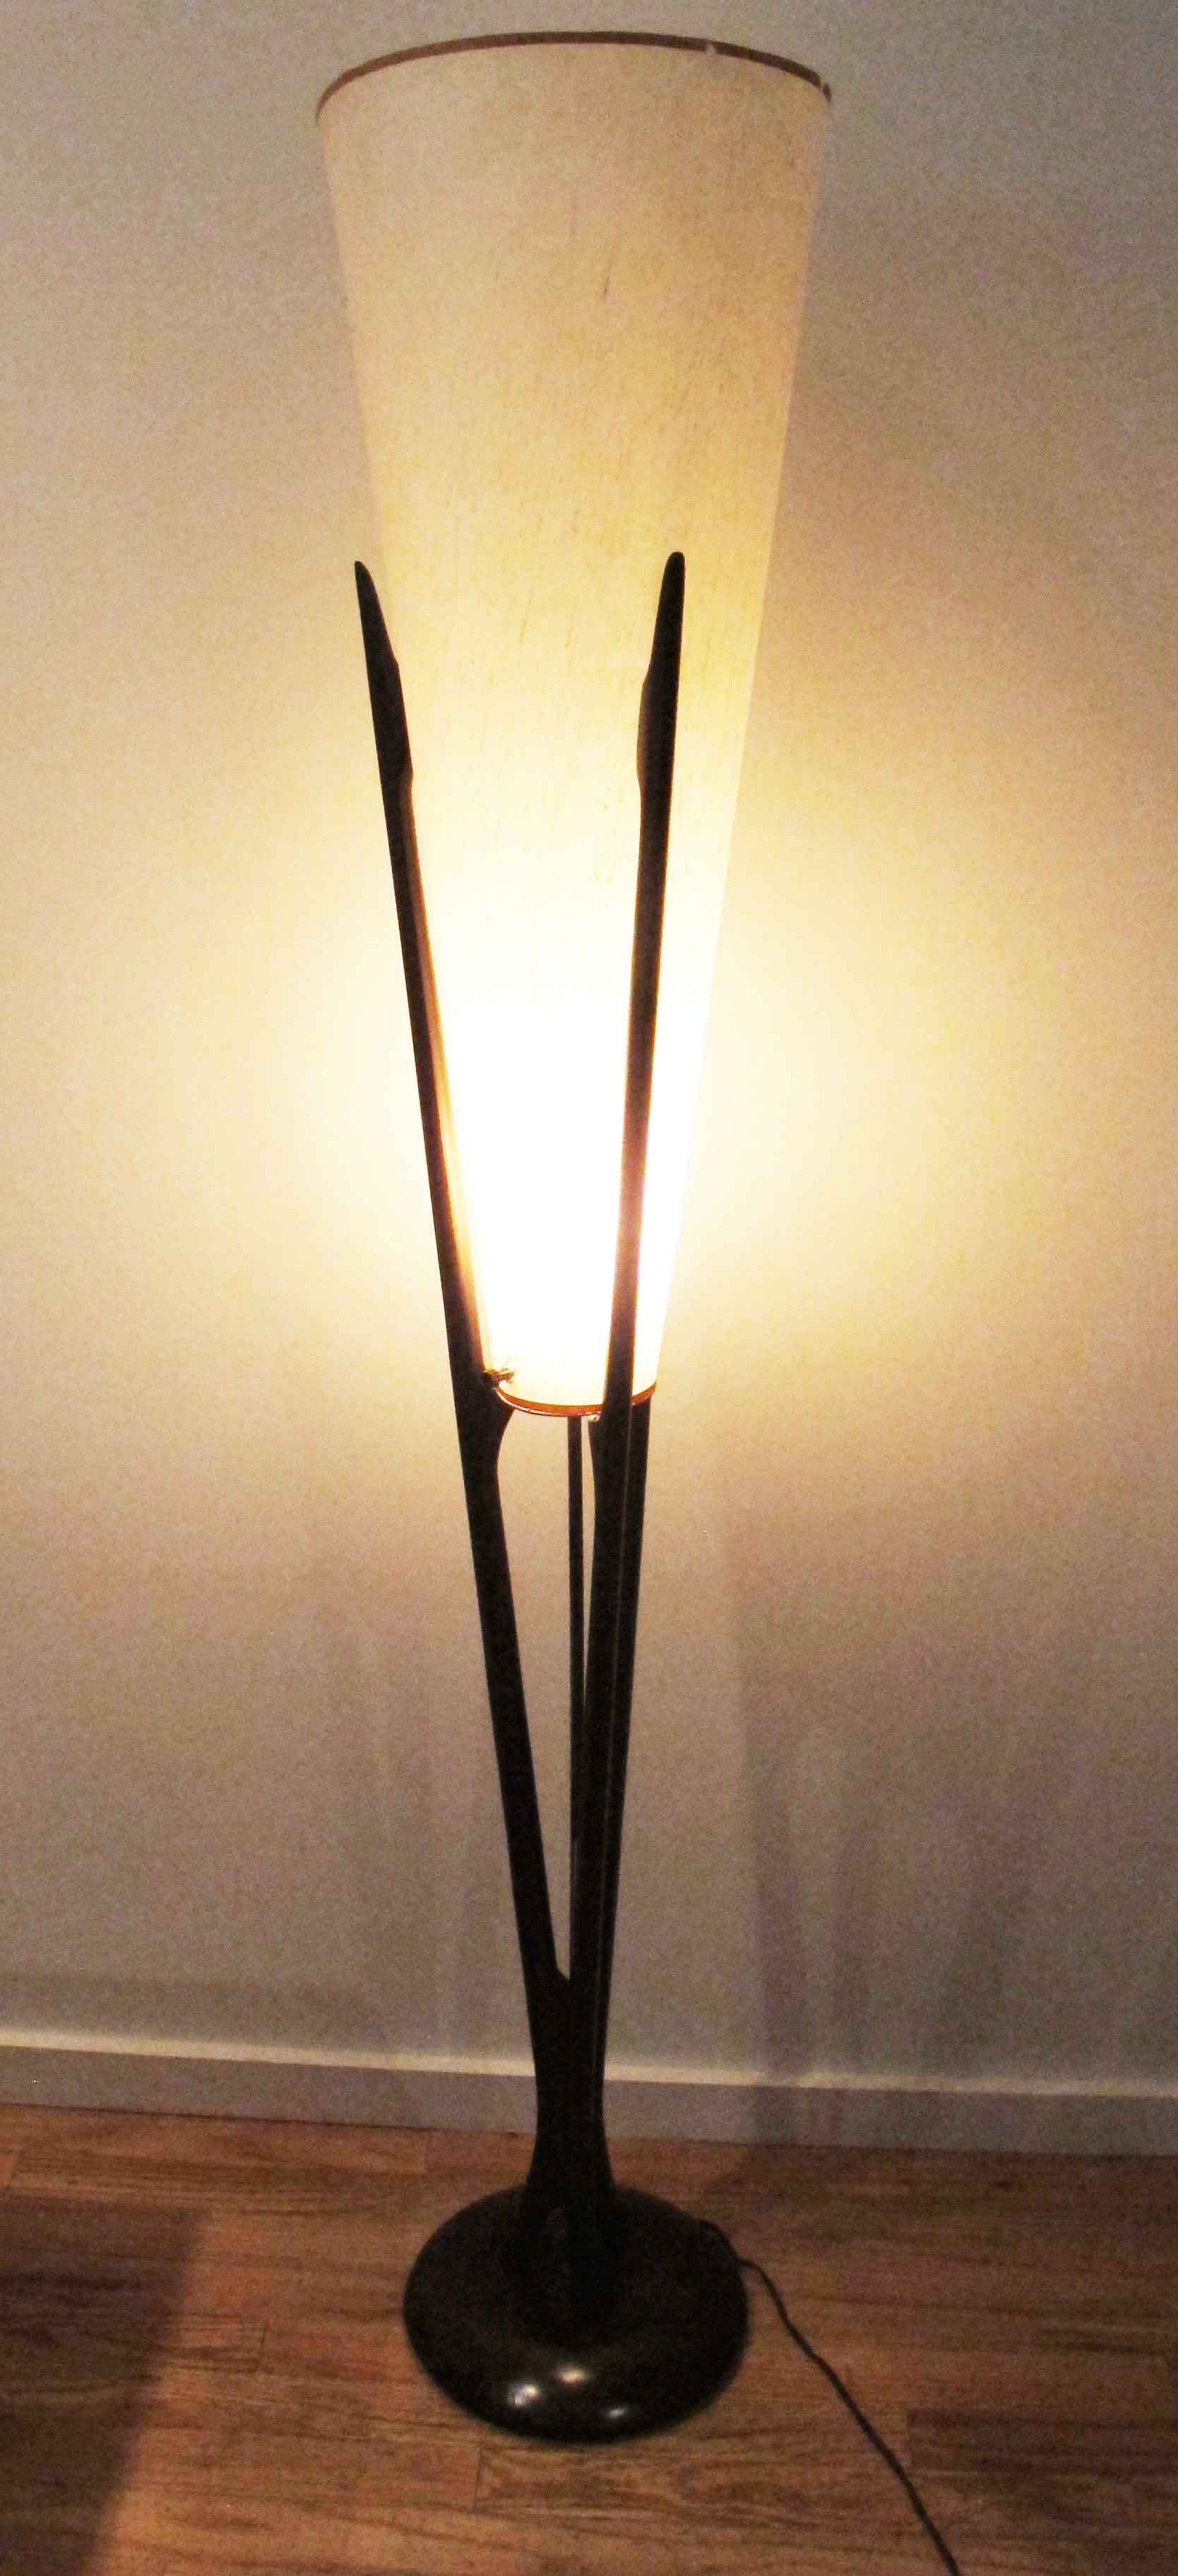 MID CENTURY MODERN MODELINE STYLE SCULPTED WALNUT AND BRASS FLOOR LAMP WITH CONE SHADE